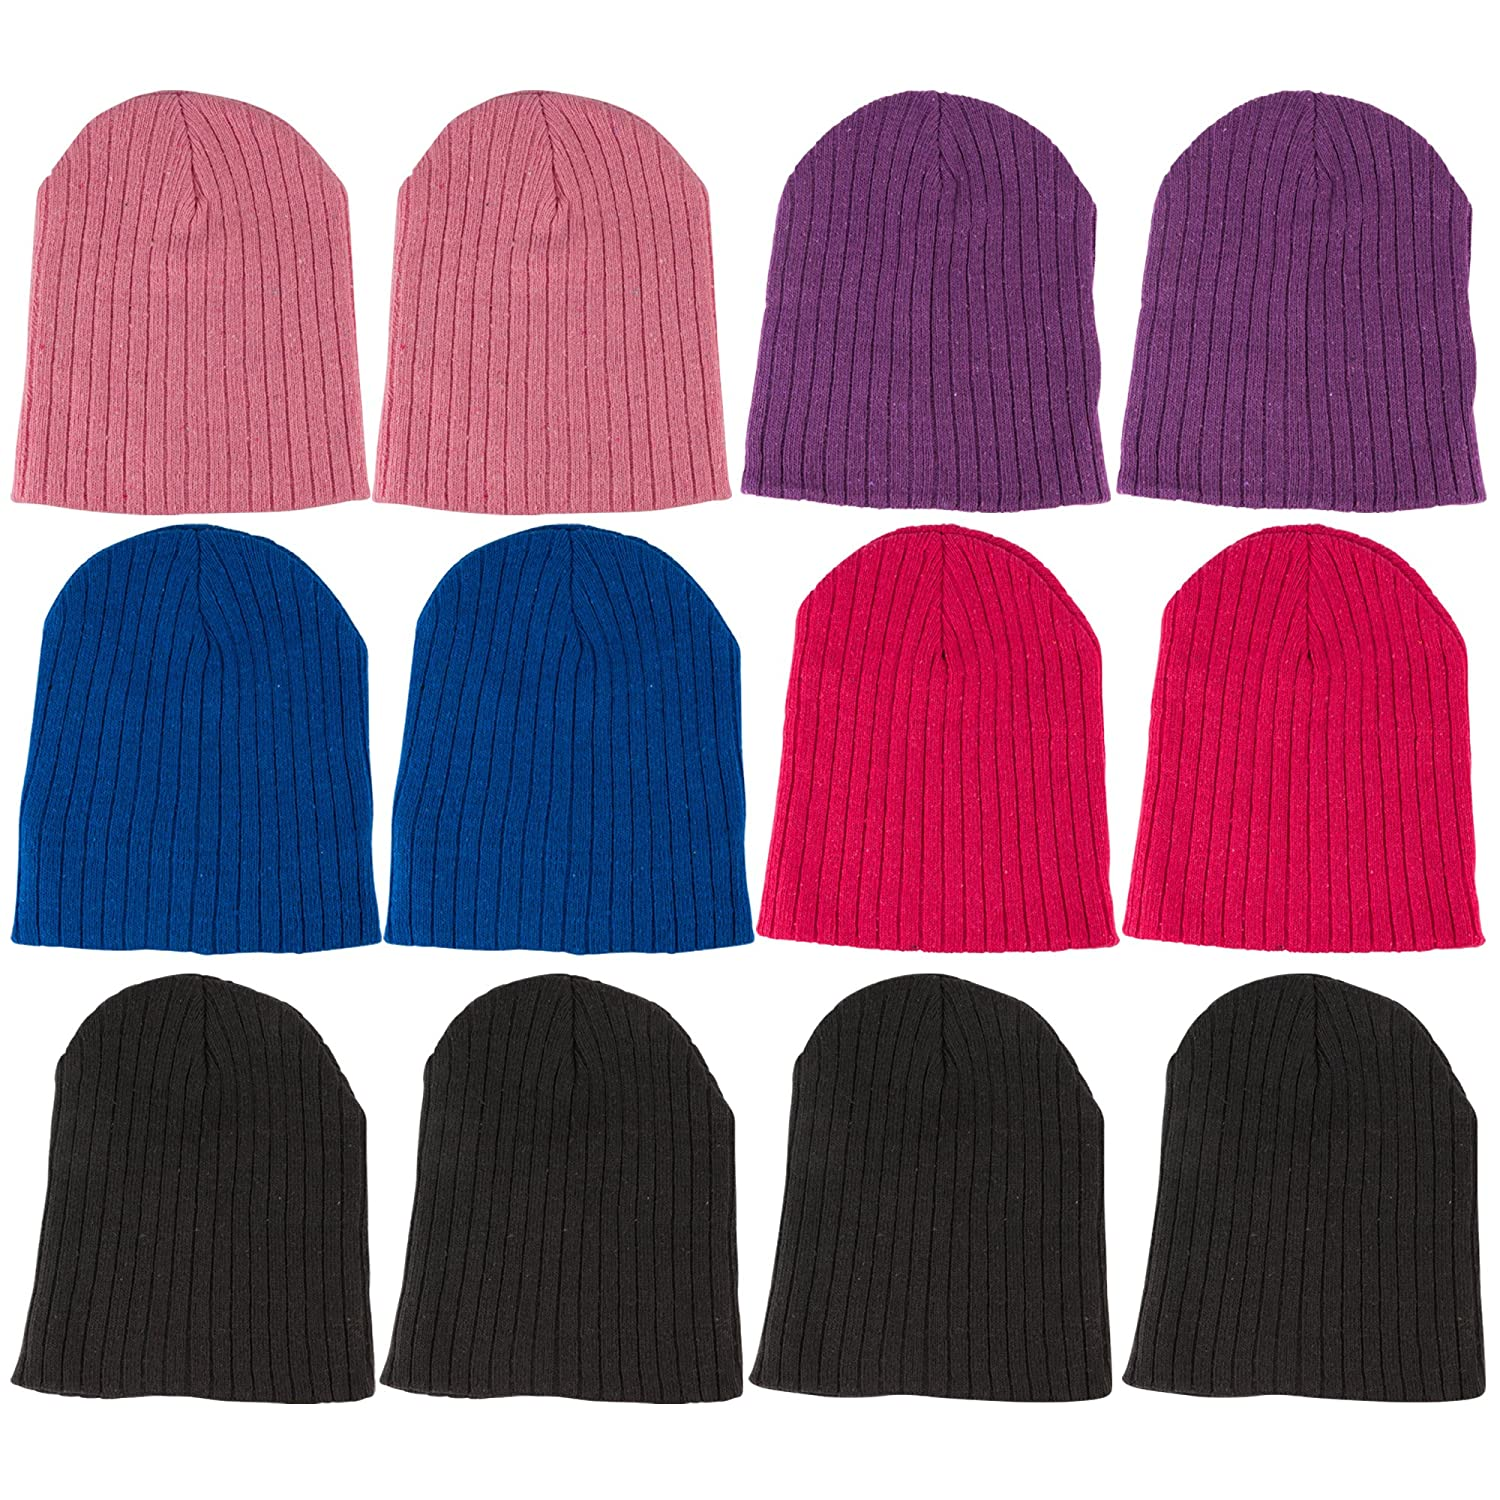 excell Kids Winter Beanie Hat Assorted Colors Bulk Pack Warm Acrylic Cap